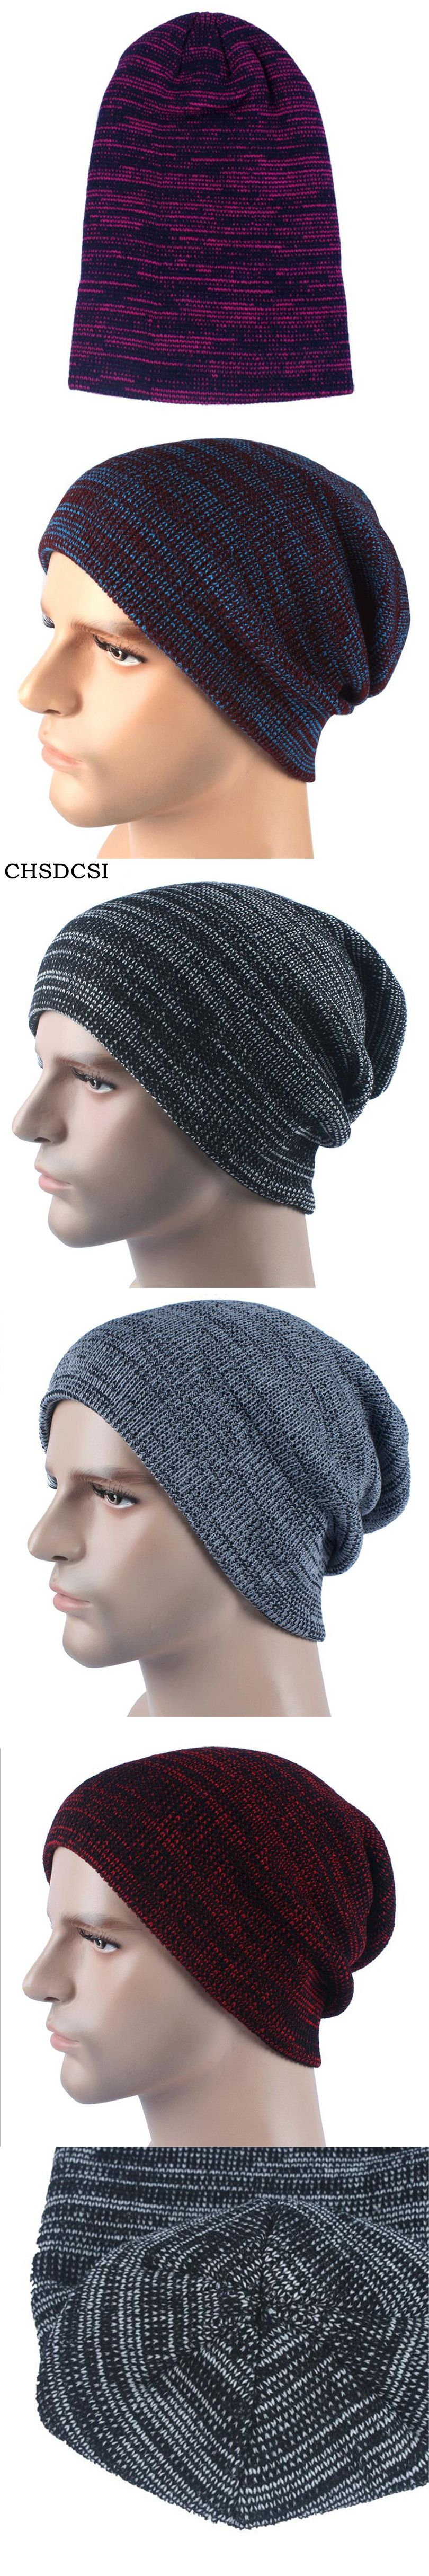 7814fe3203737 CHSDCSI Men s Skullies Bonnet Winter Beanie Knitted Wool Hat Plus Velvet  Cap Thicker Stripe Skis Sports Beanies Hats For Men